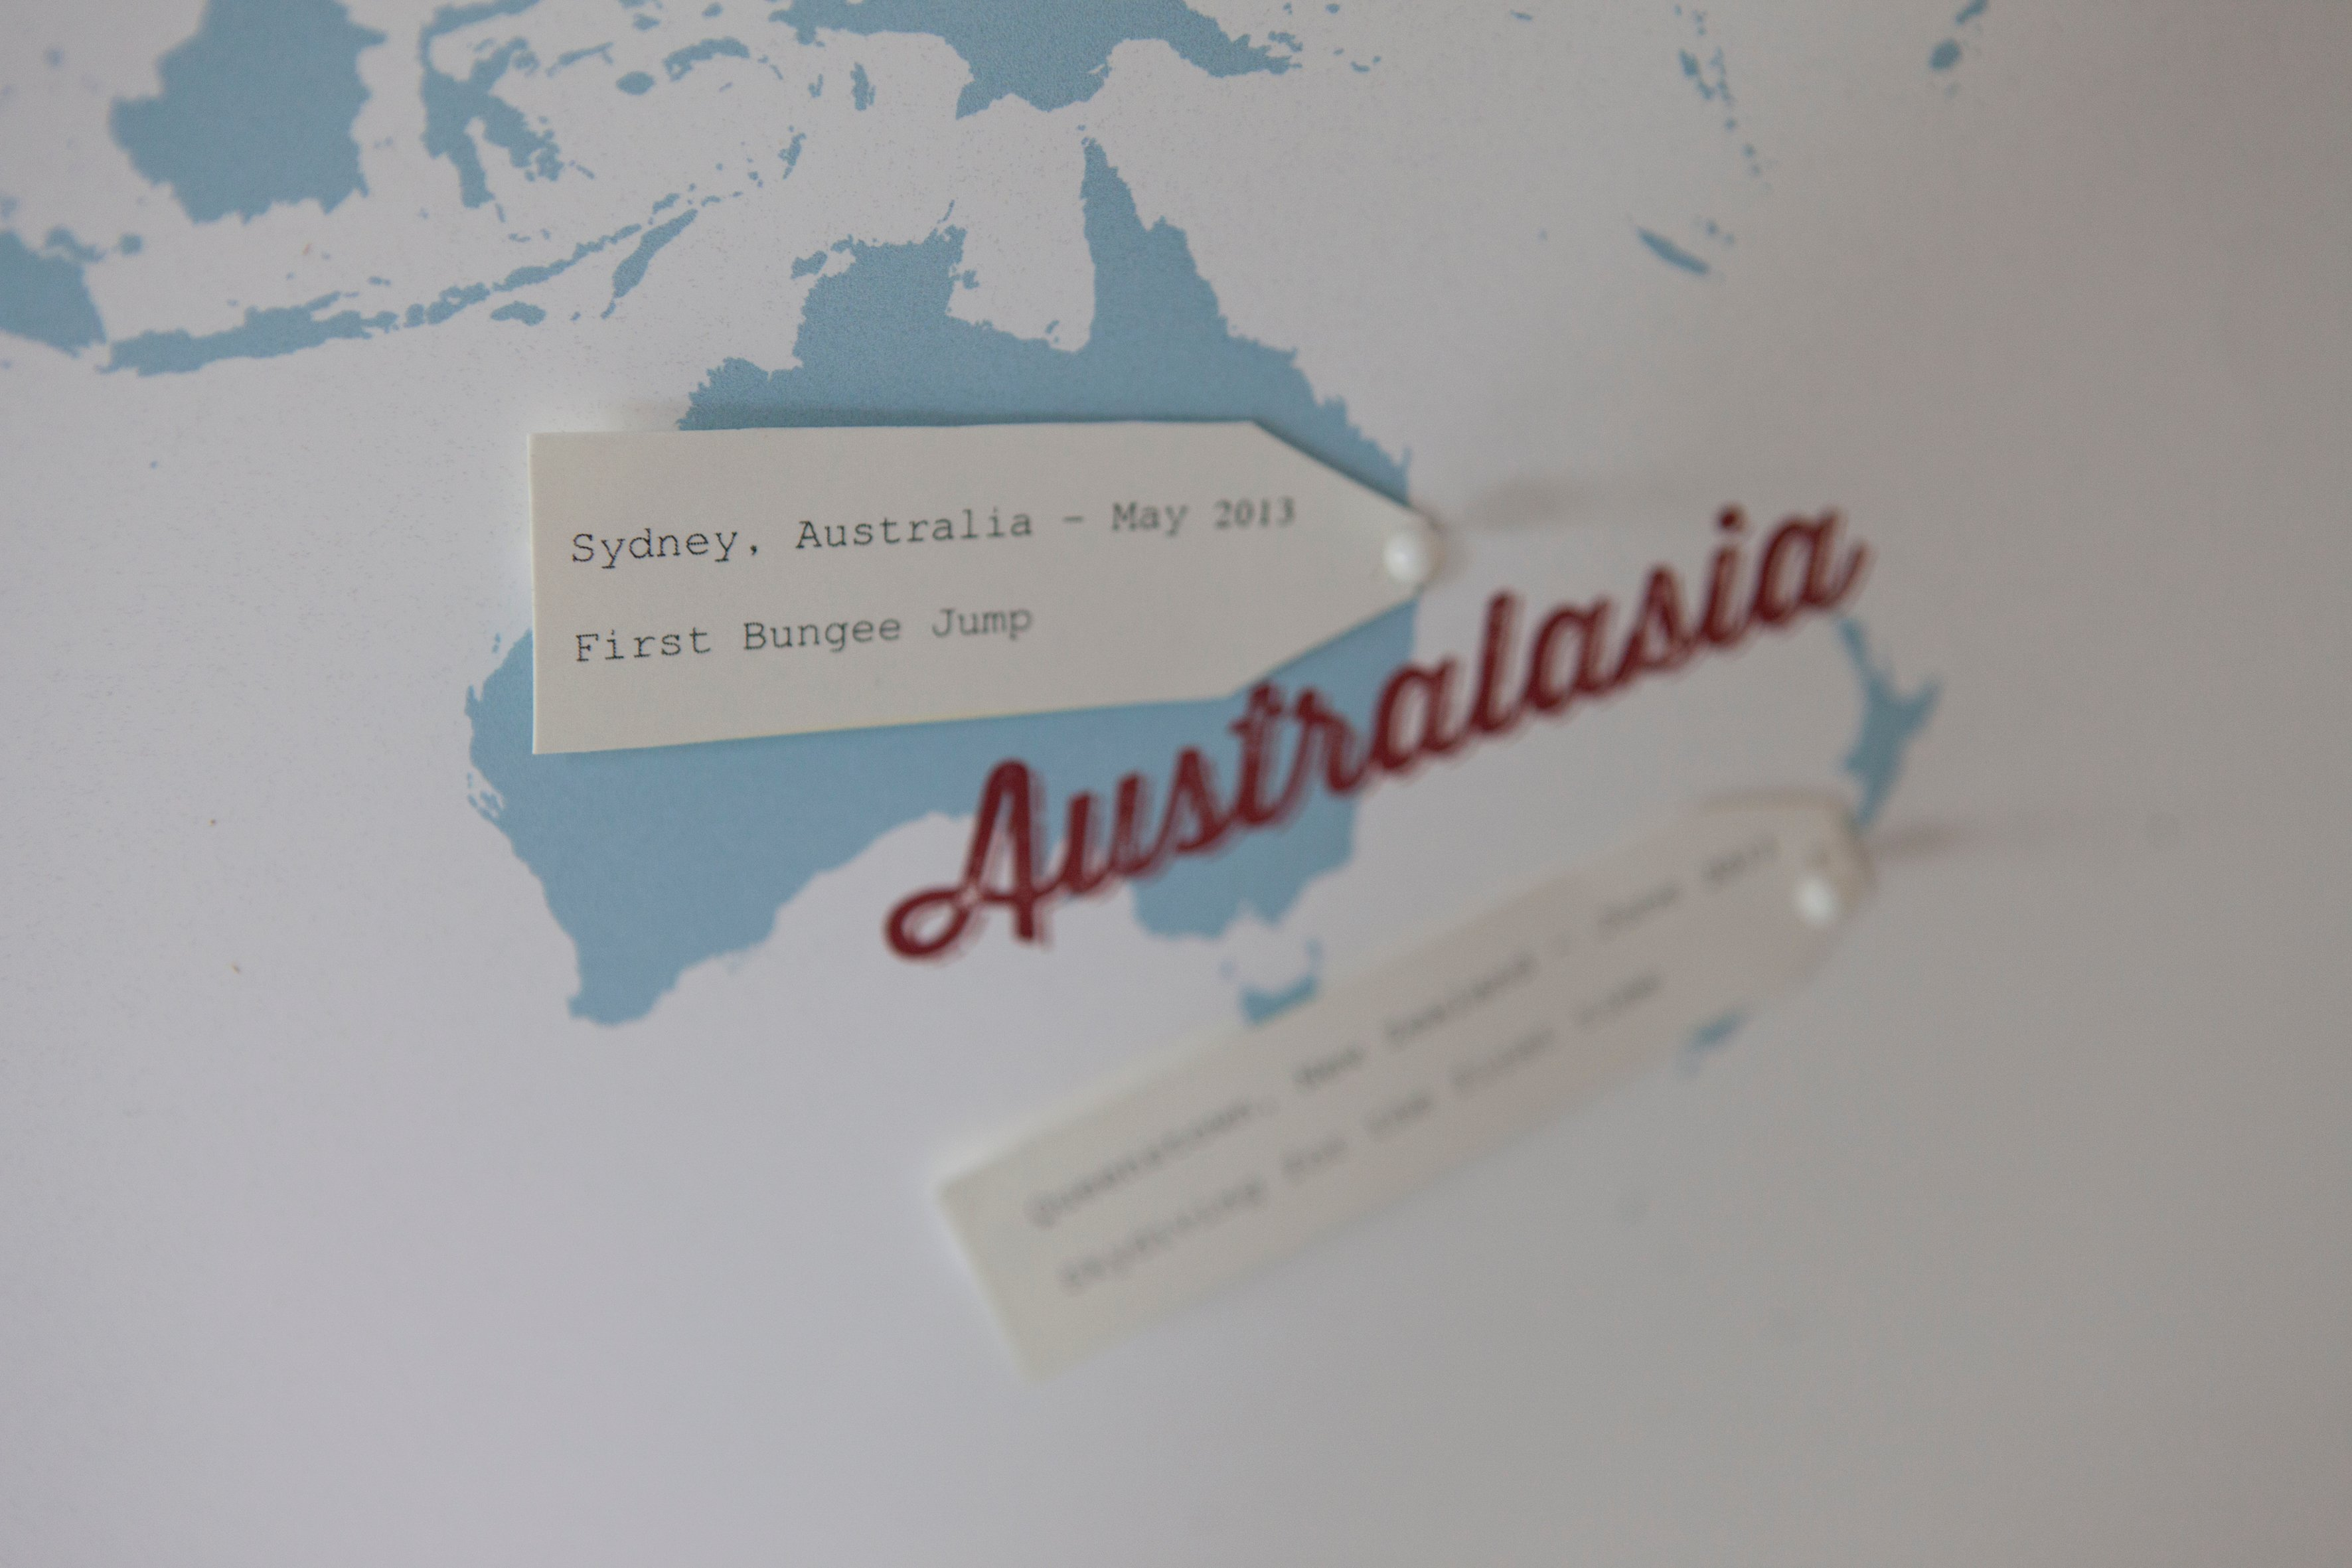 Australasia Travels